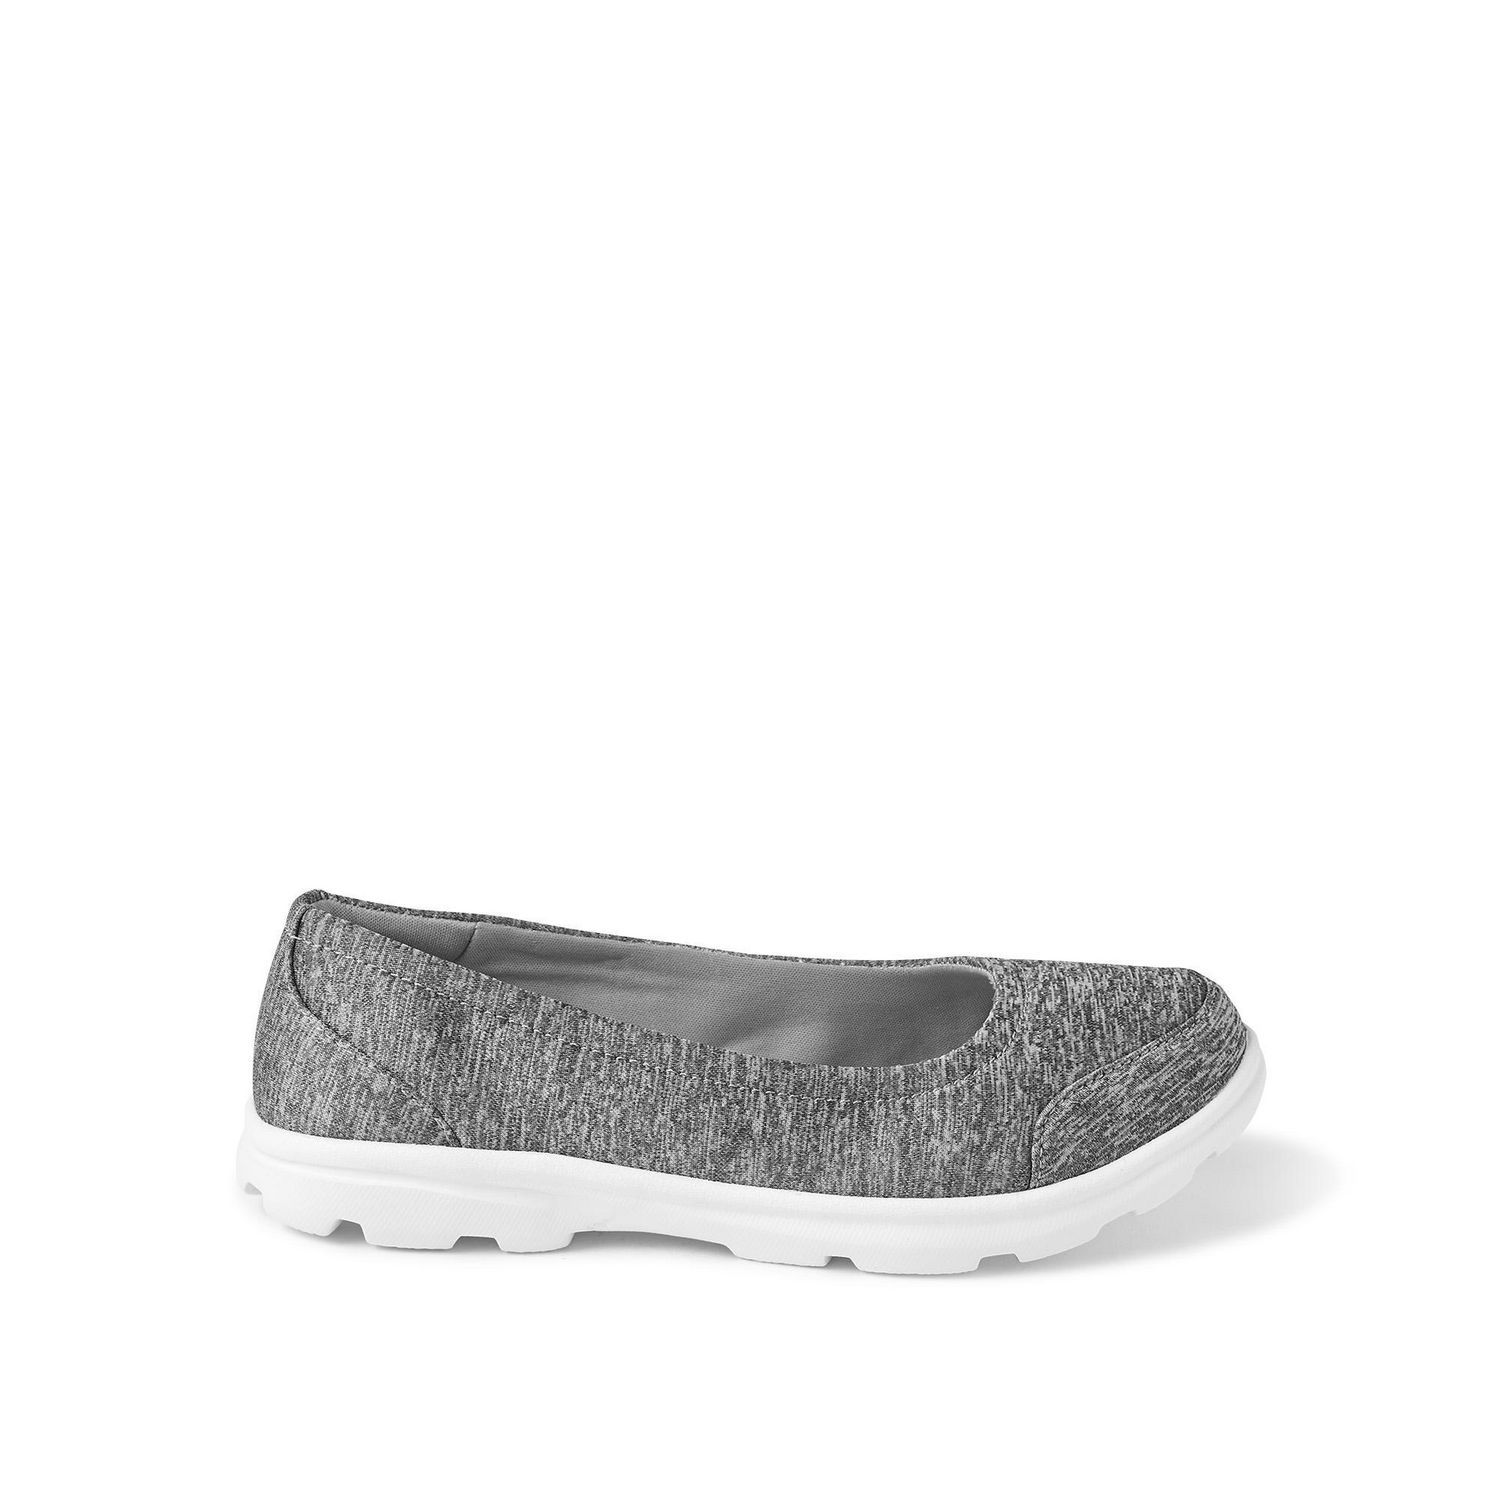 Athletic Works Women's Marion Shoes